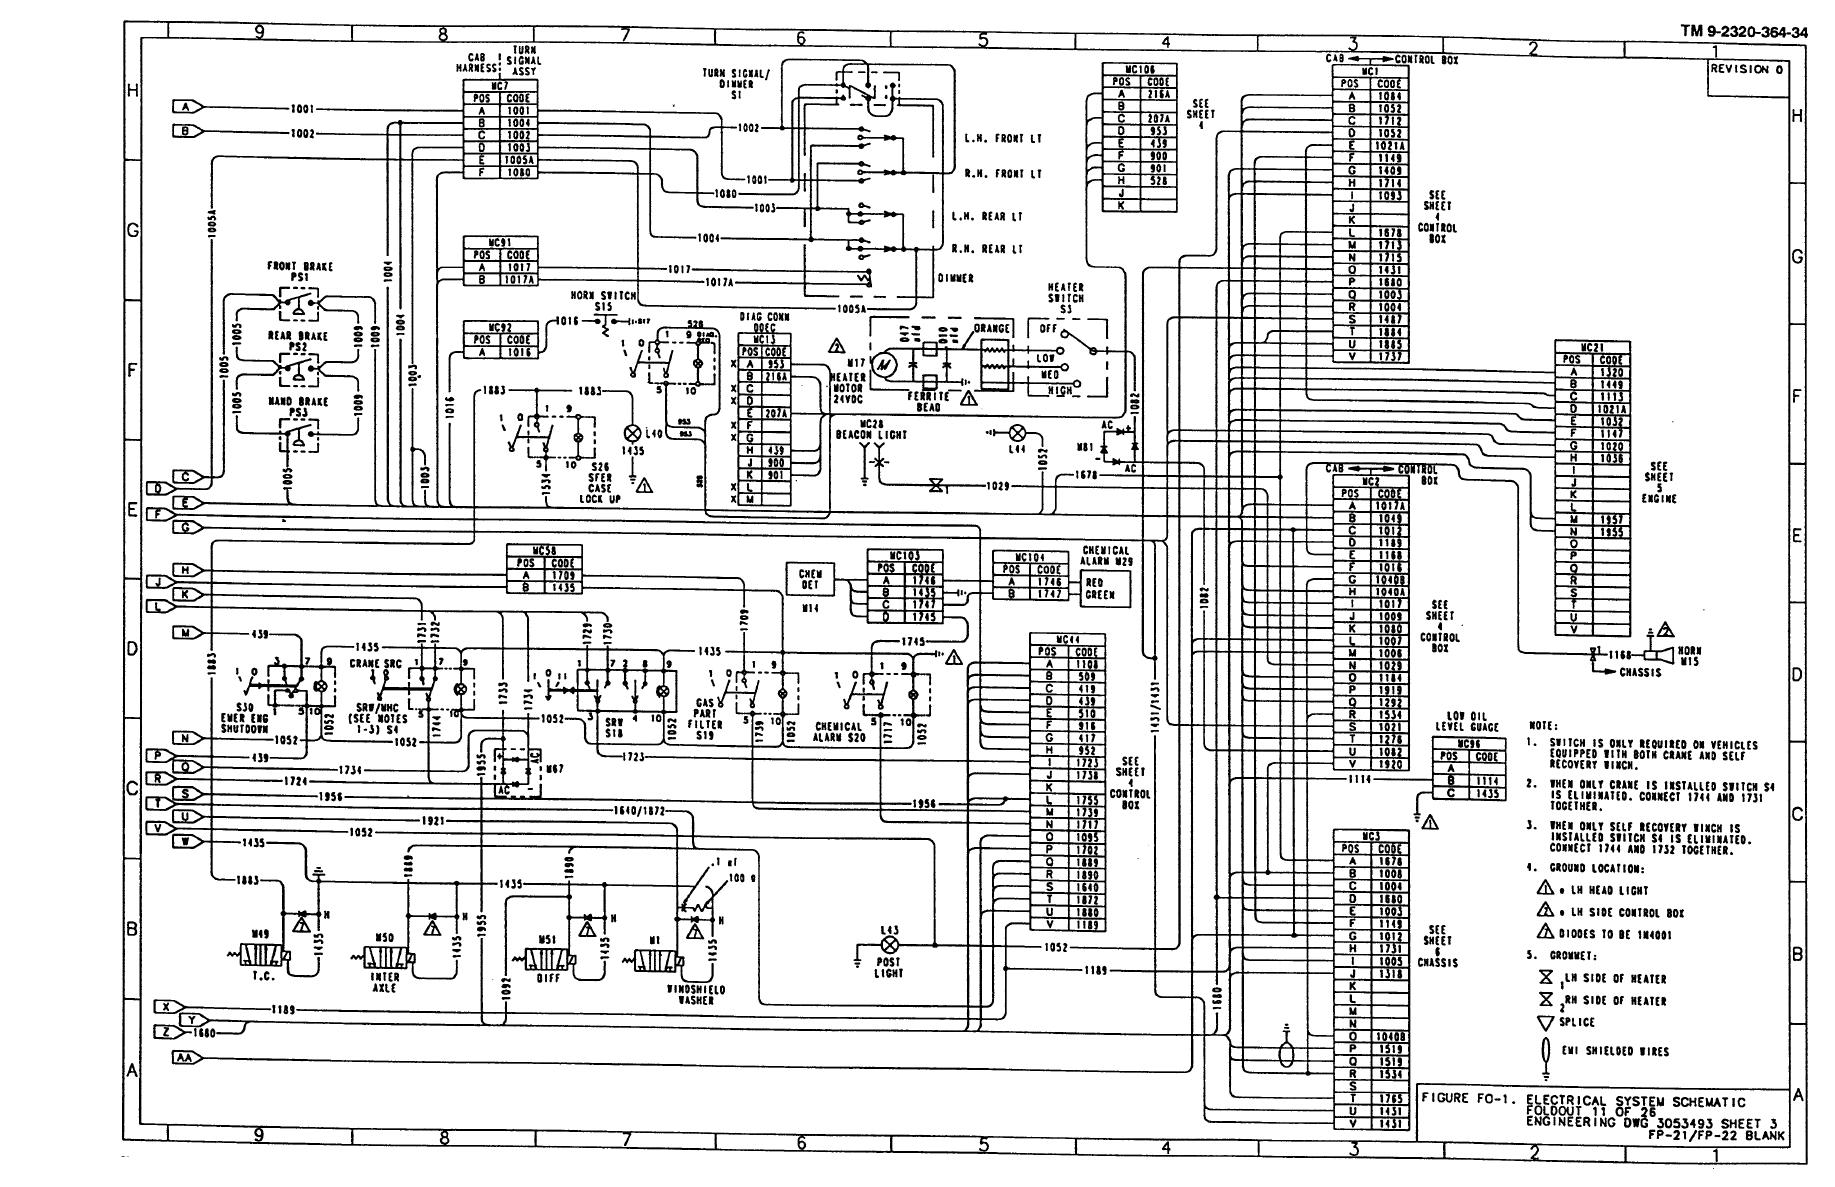 Figure Fo 1 Electrical System Schematic Foldout 11 Of 26